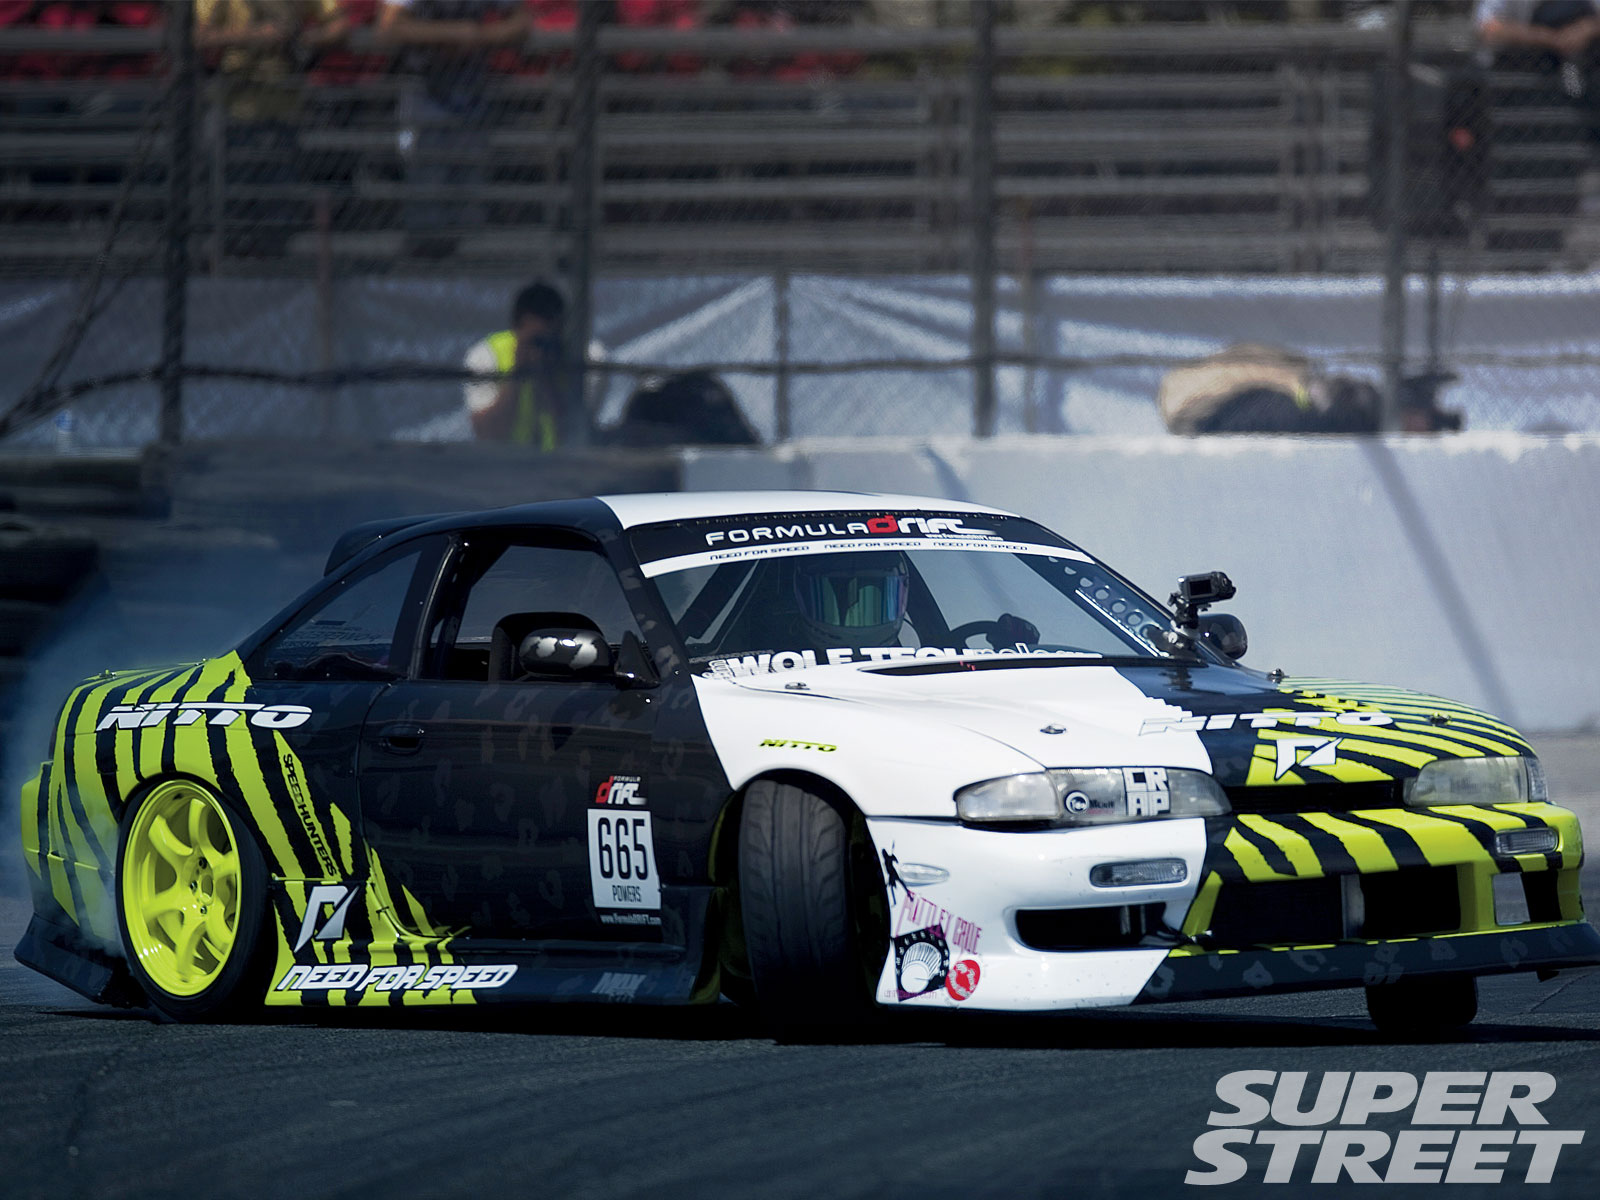 Silvia Drift Image Gallery Hcpr